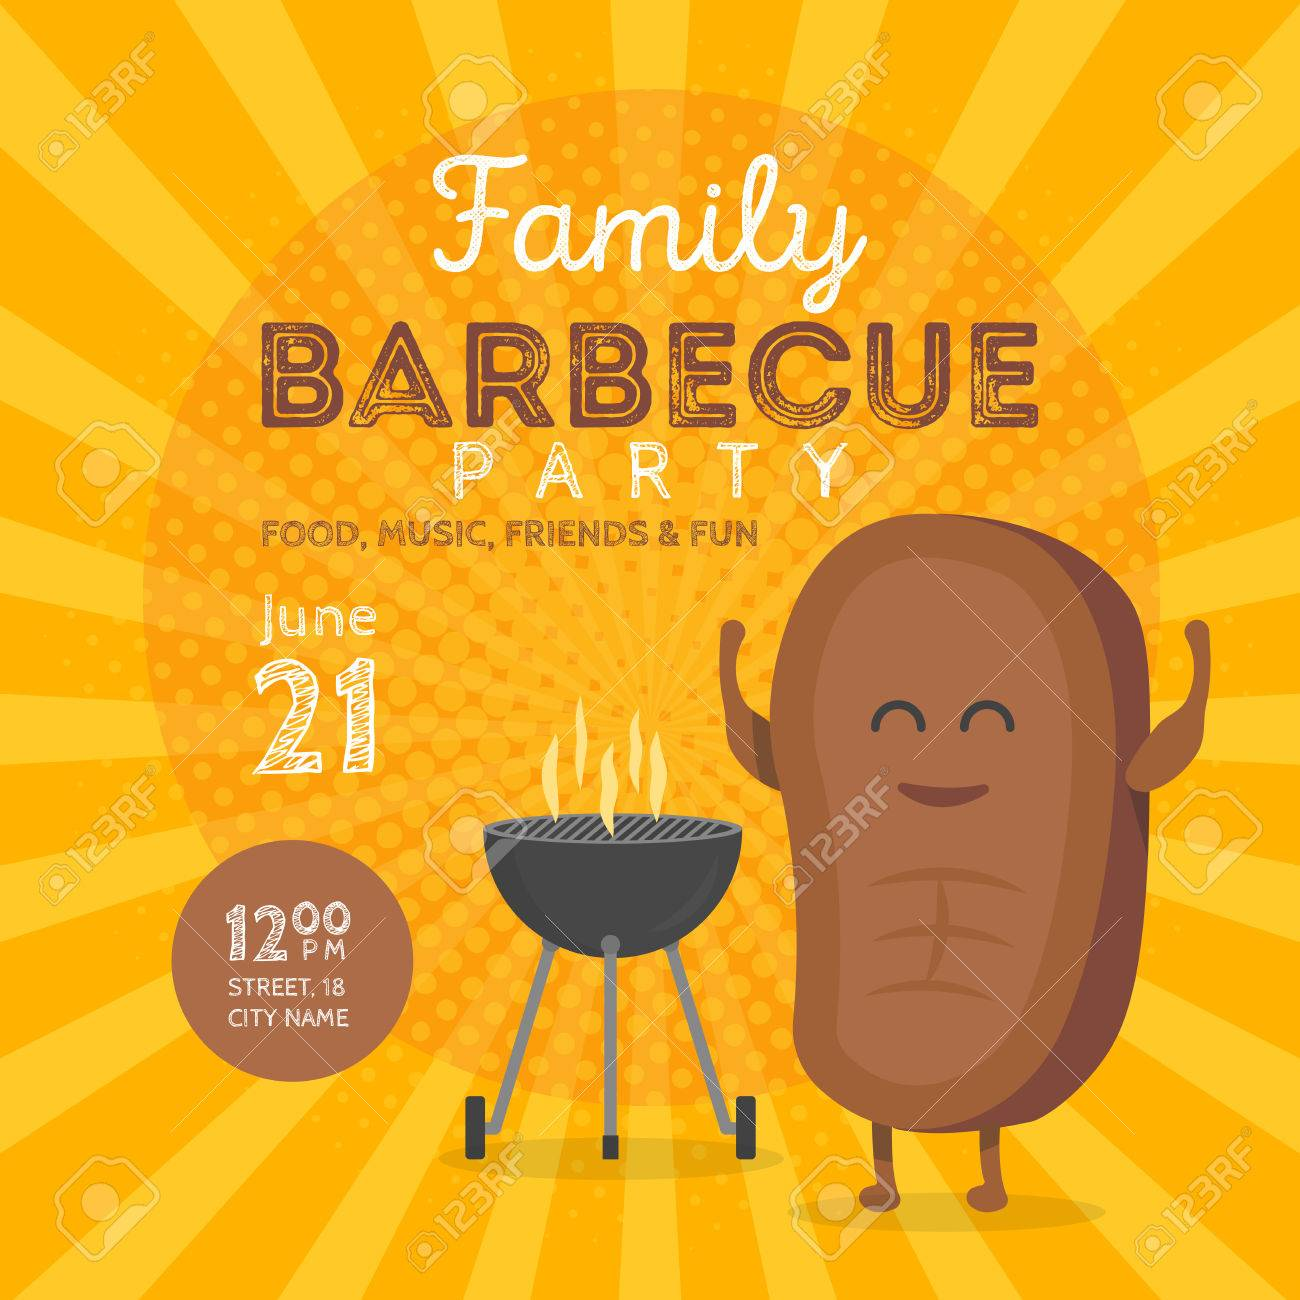 family bbq party invitation template cute steak character barbecue